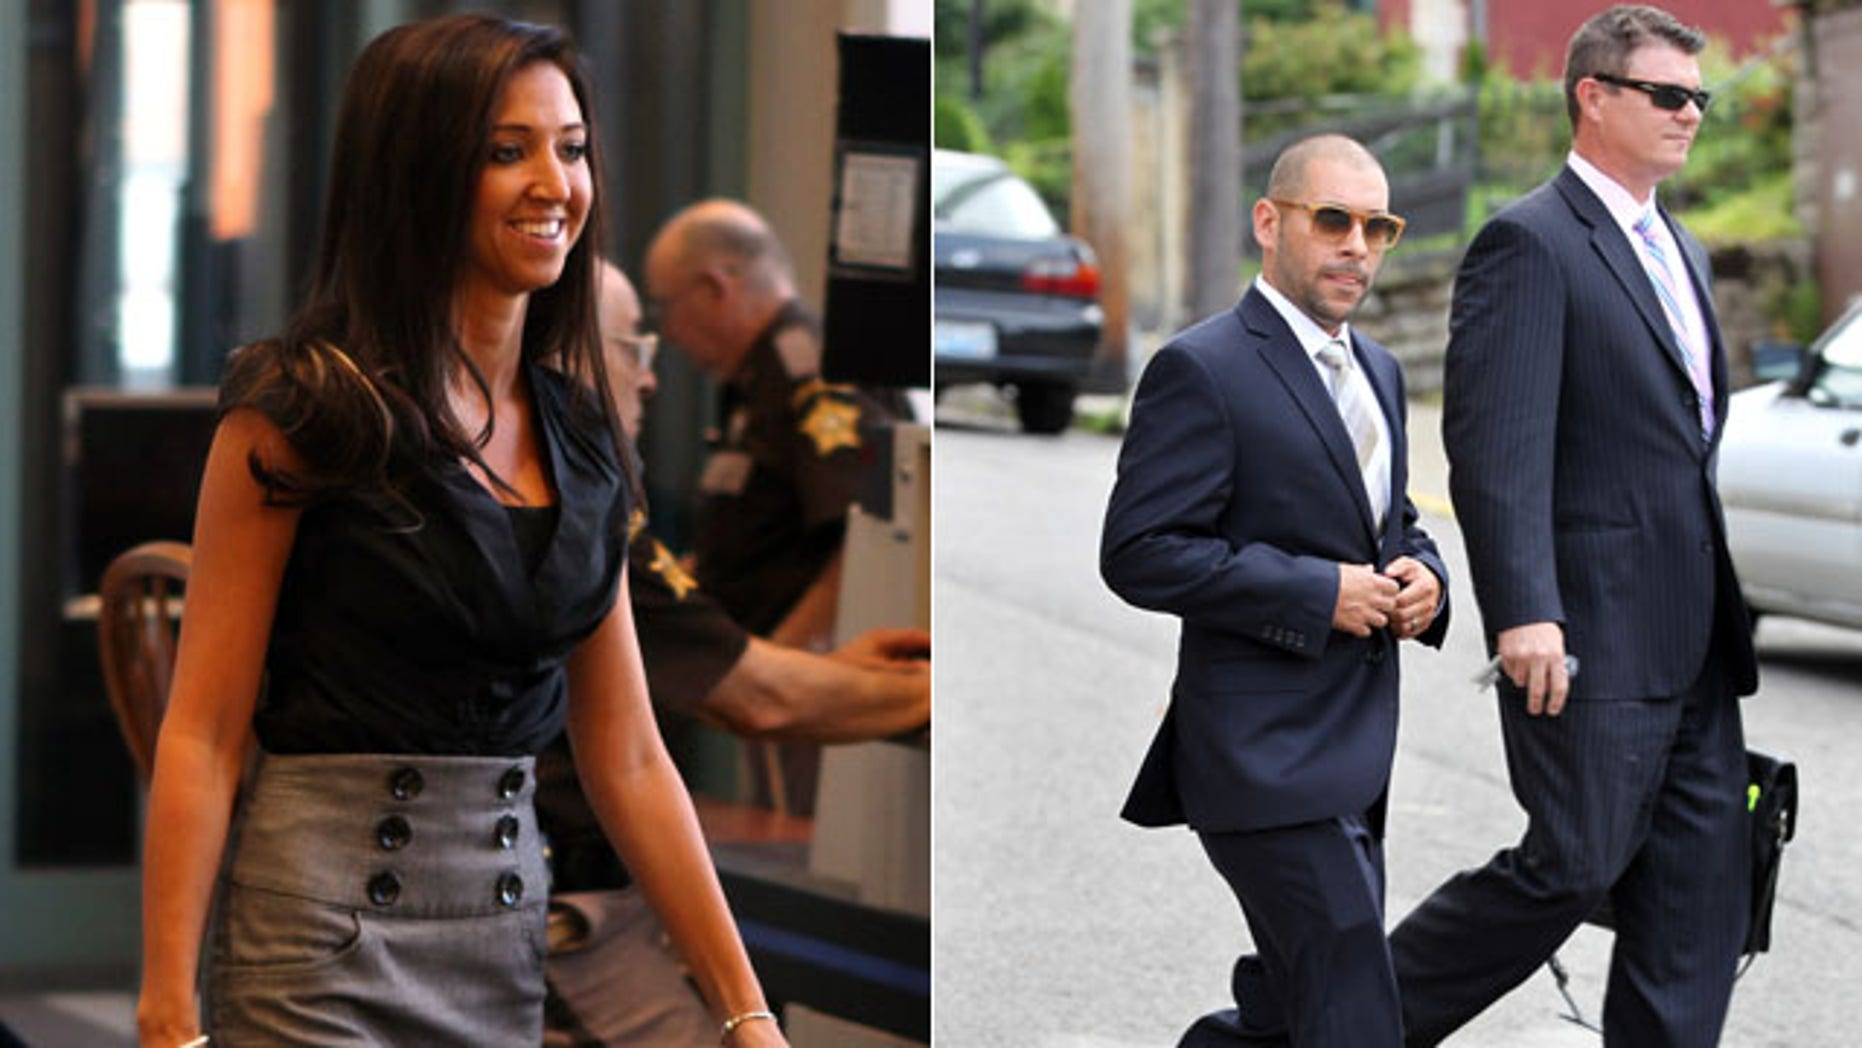 These photos show, Sarah Jones (left), a former Dixie Heights High School teacher and Cincinnati Ben-Gal cheerleader; and Nik Richie,  owner of the gossip website TheDirty.com, leaving the Federal Courthouse in Covington, Ky., with his lawyer, David Gingra. Jones, who was convicted of having sex with her 17-year-old student three months ago, is suing a controversial Scottsdale, Ariz.-based gossip website and its owner over lewd comments made about her online long before any accusations involving the teenager surfaced. (AP Photos)